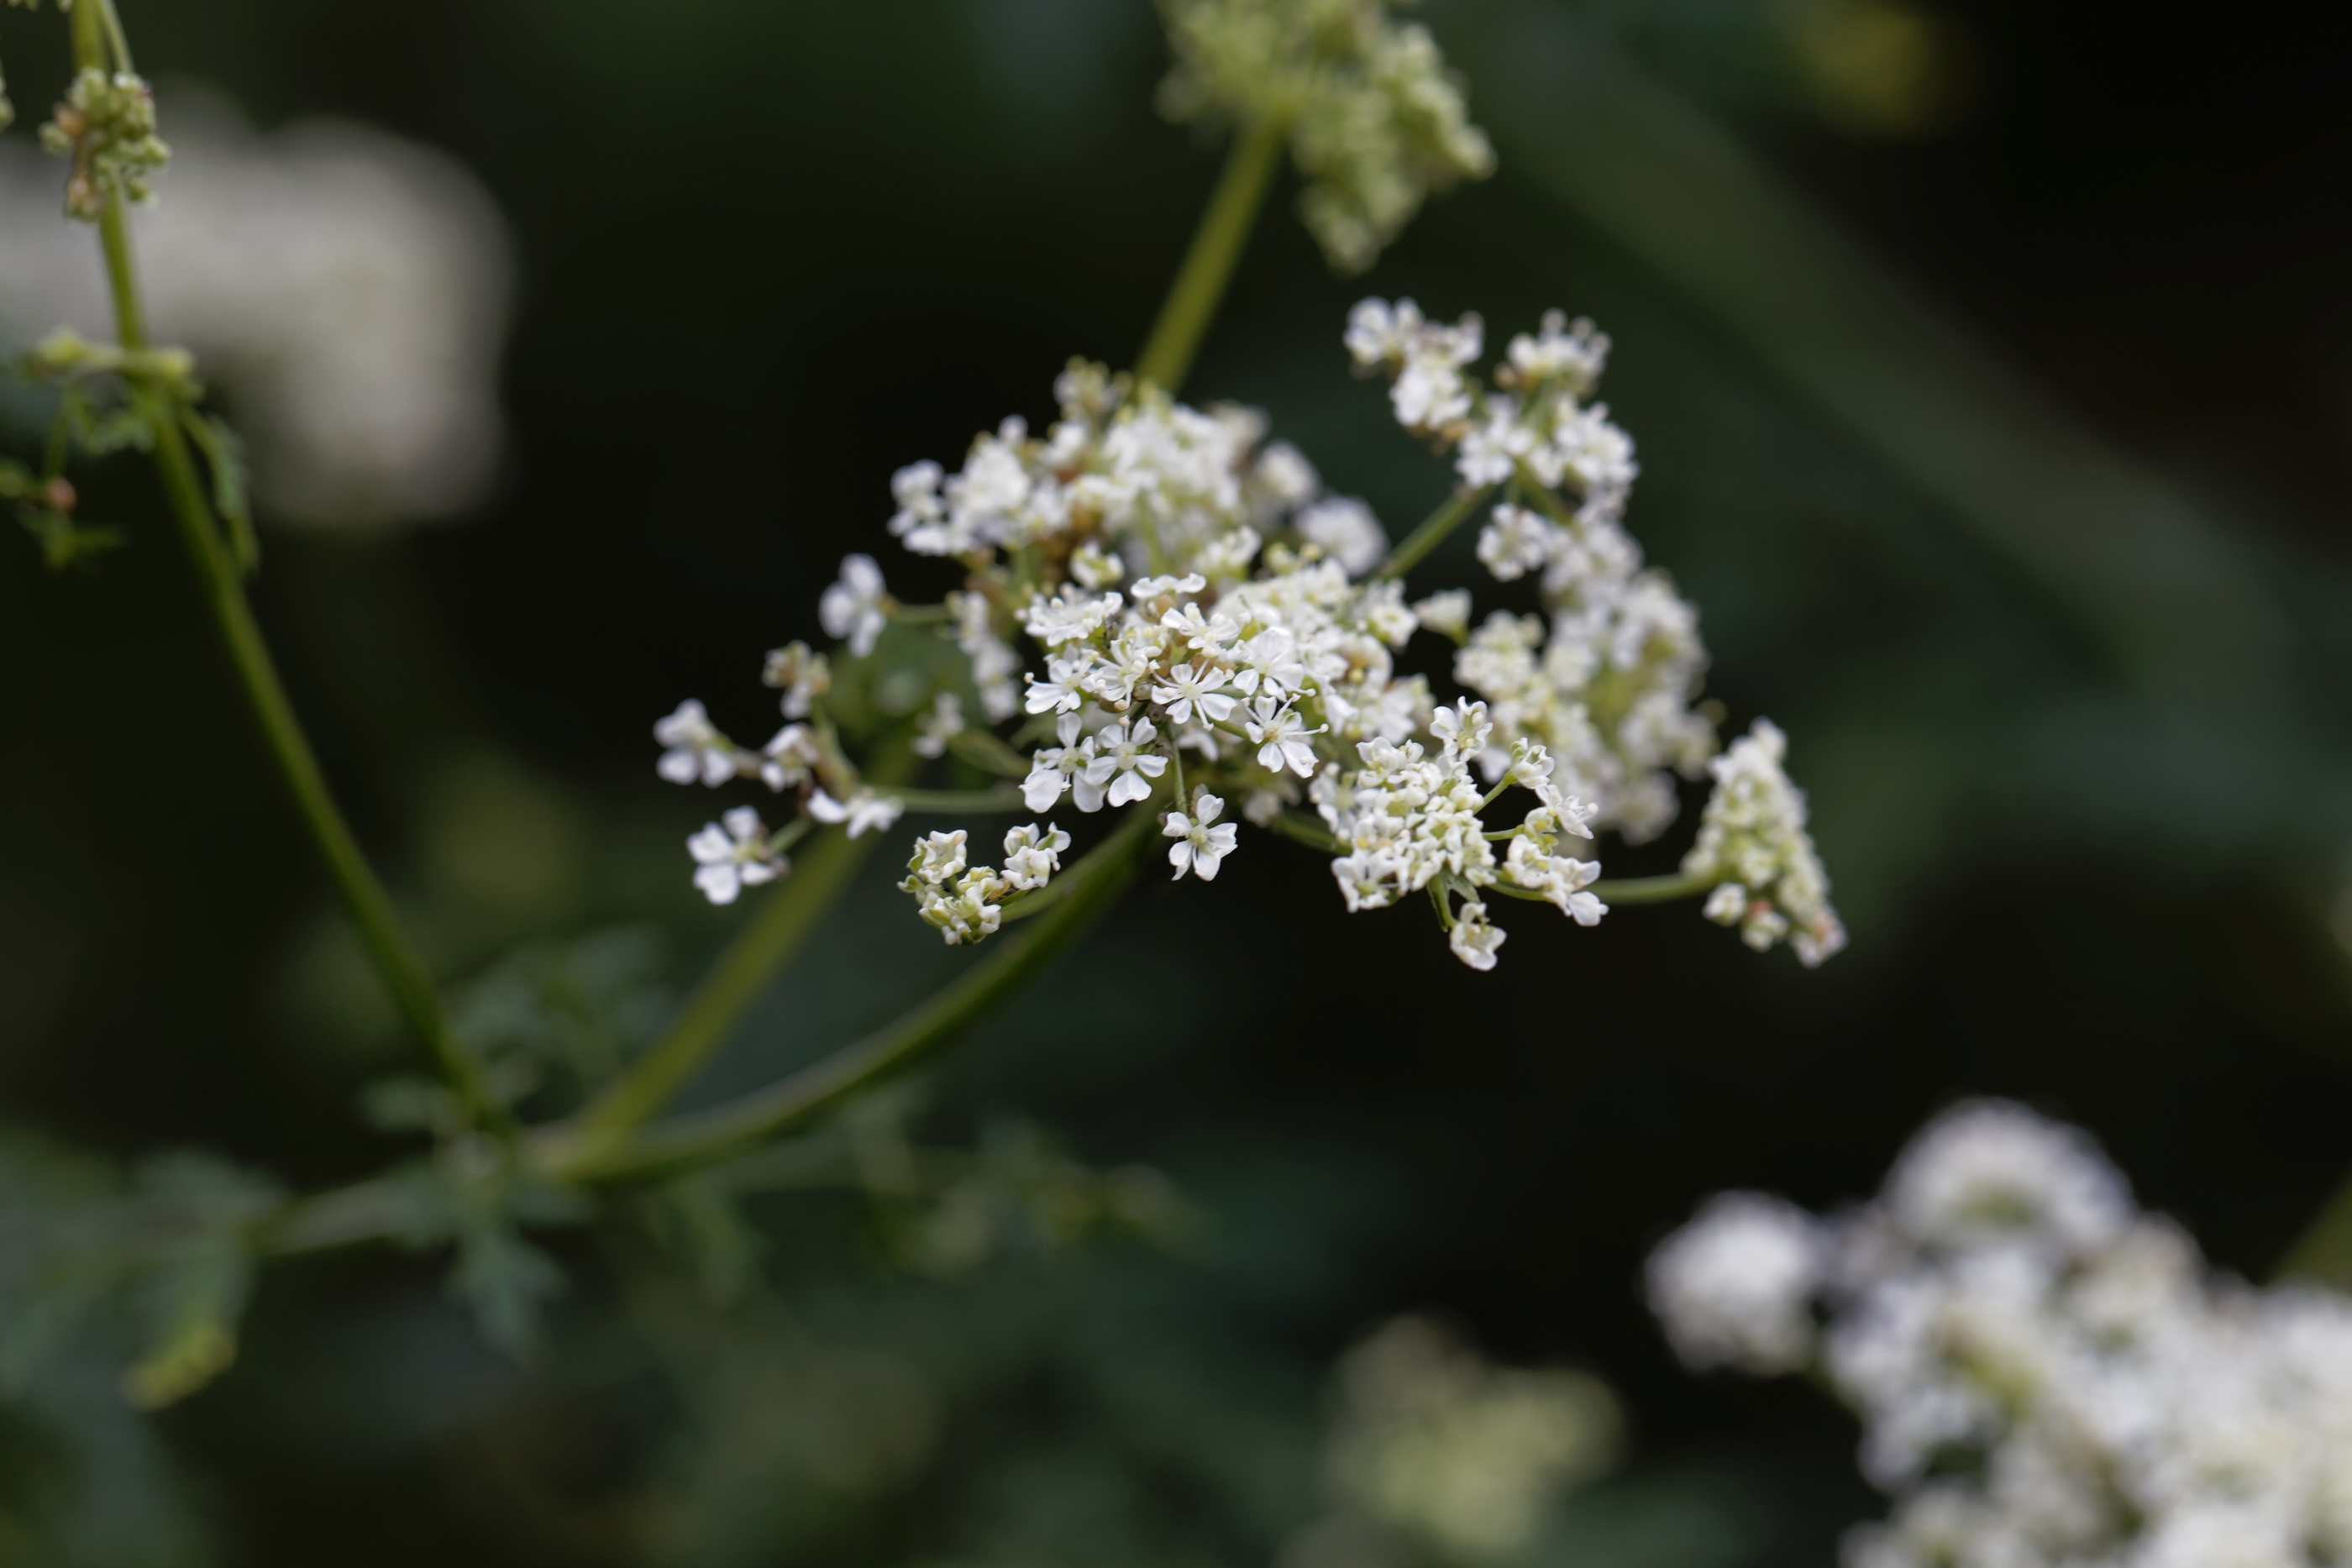 Poison Hemlock A Toxic Invasive Plant Is Popping Up